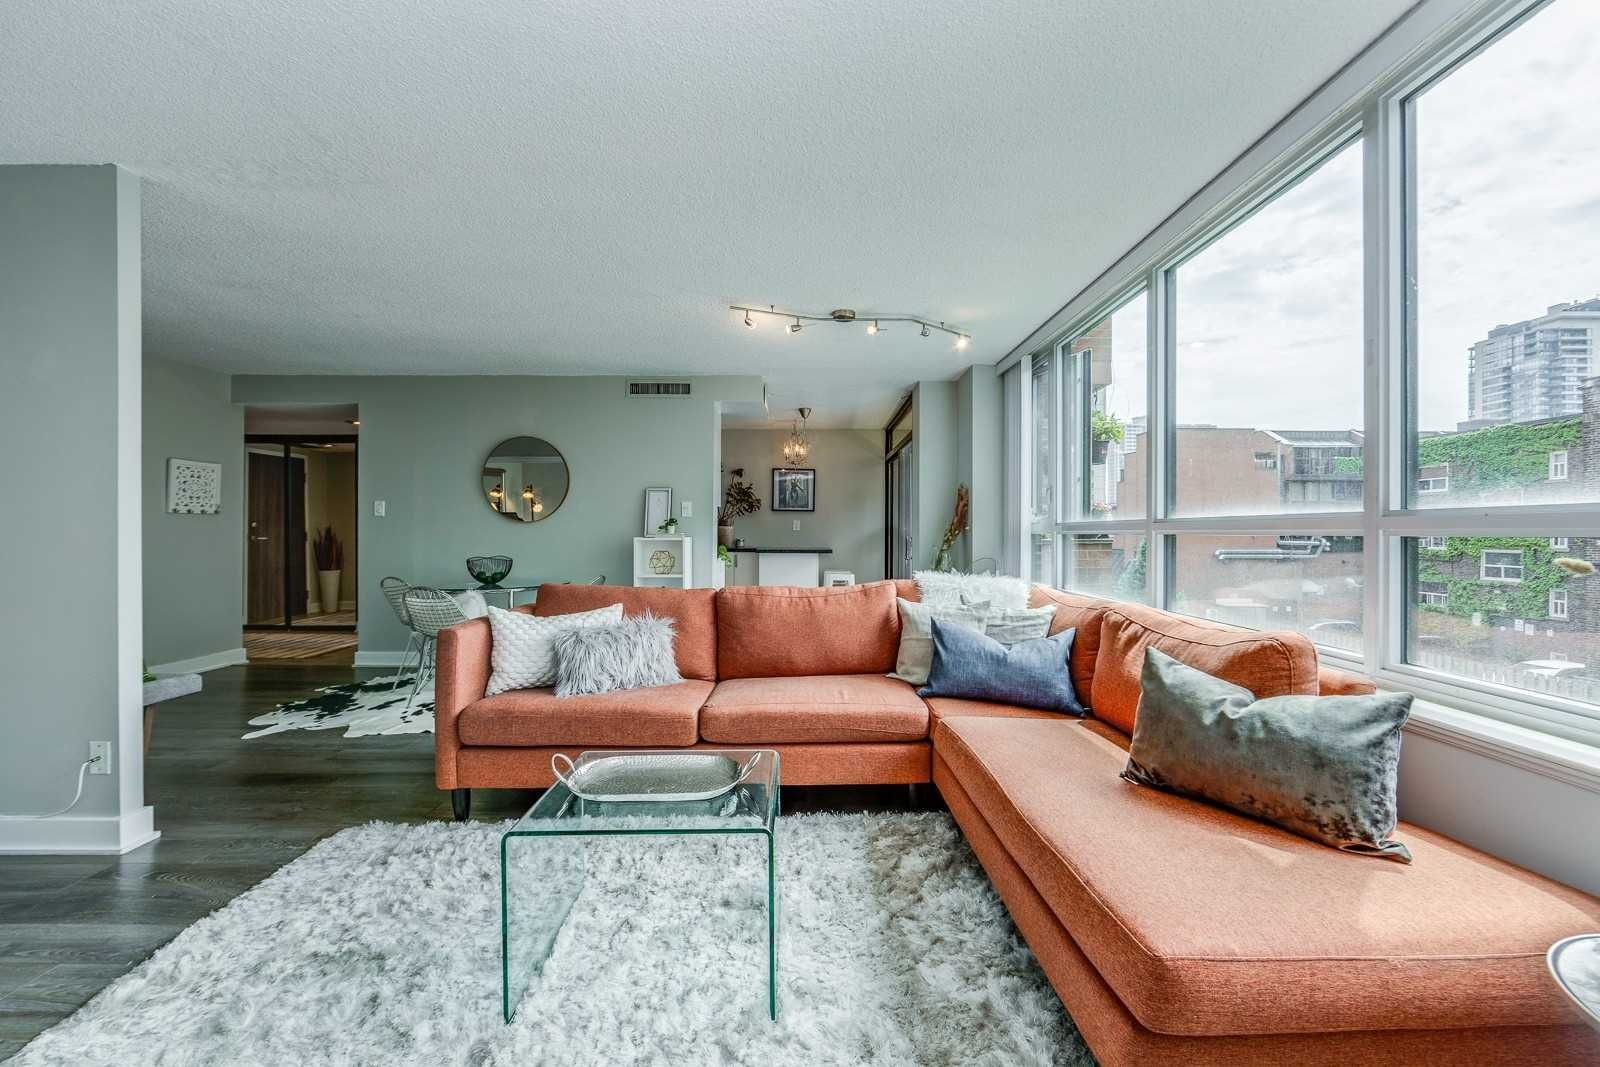 55 Wellesley St E, unit 202 for sale in Toronto - image #1